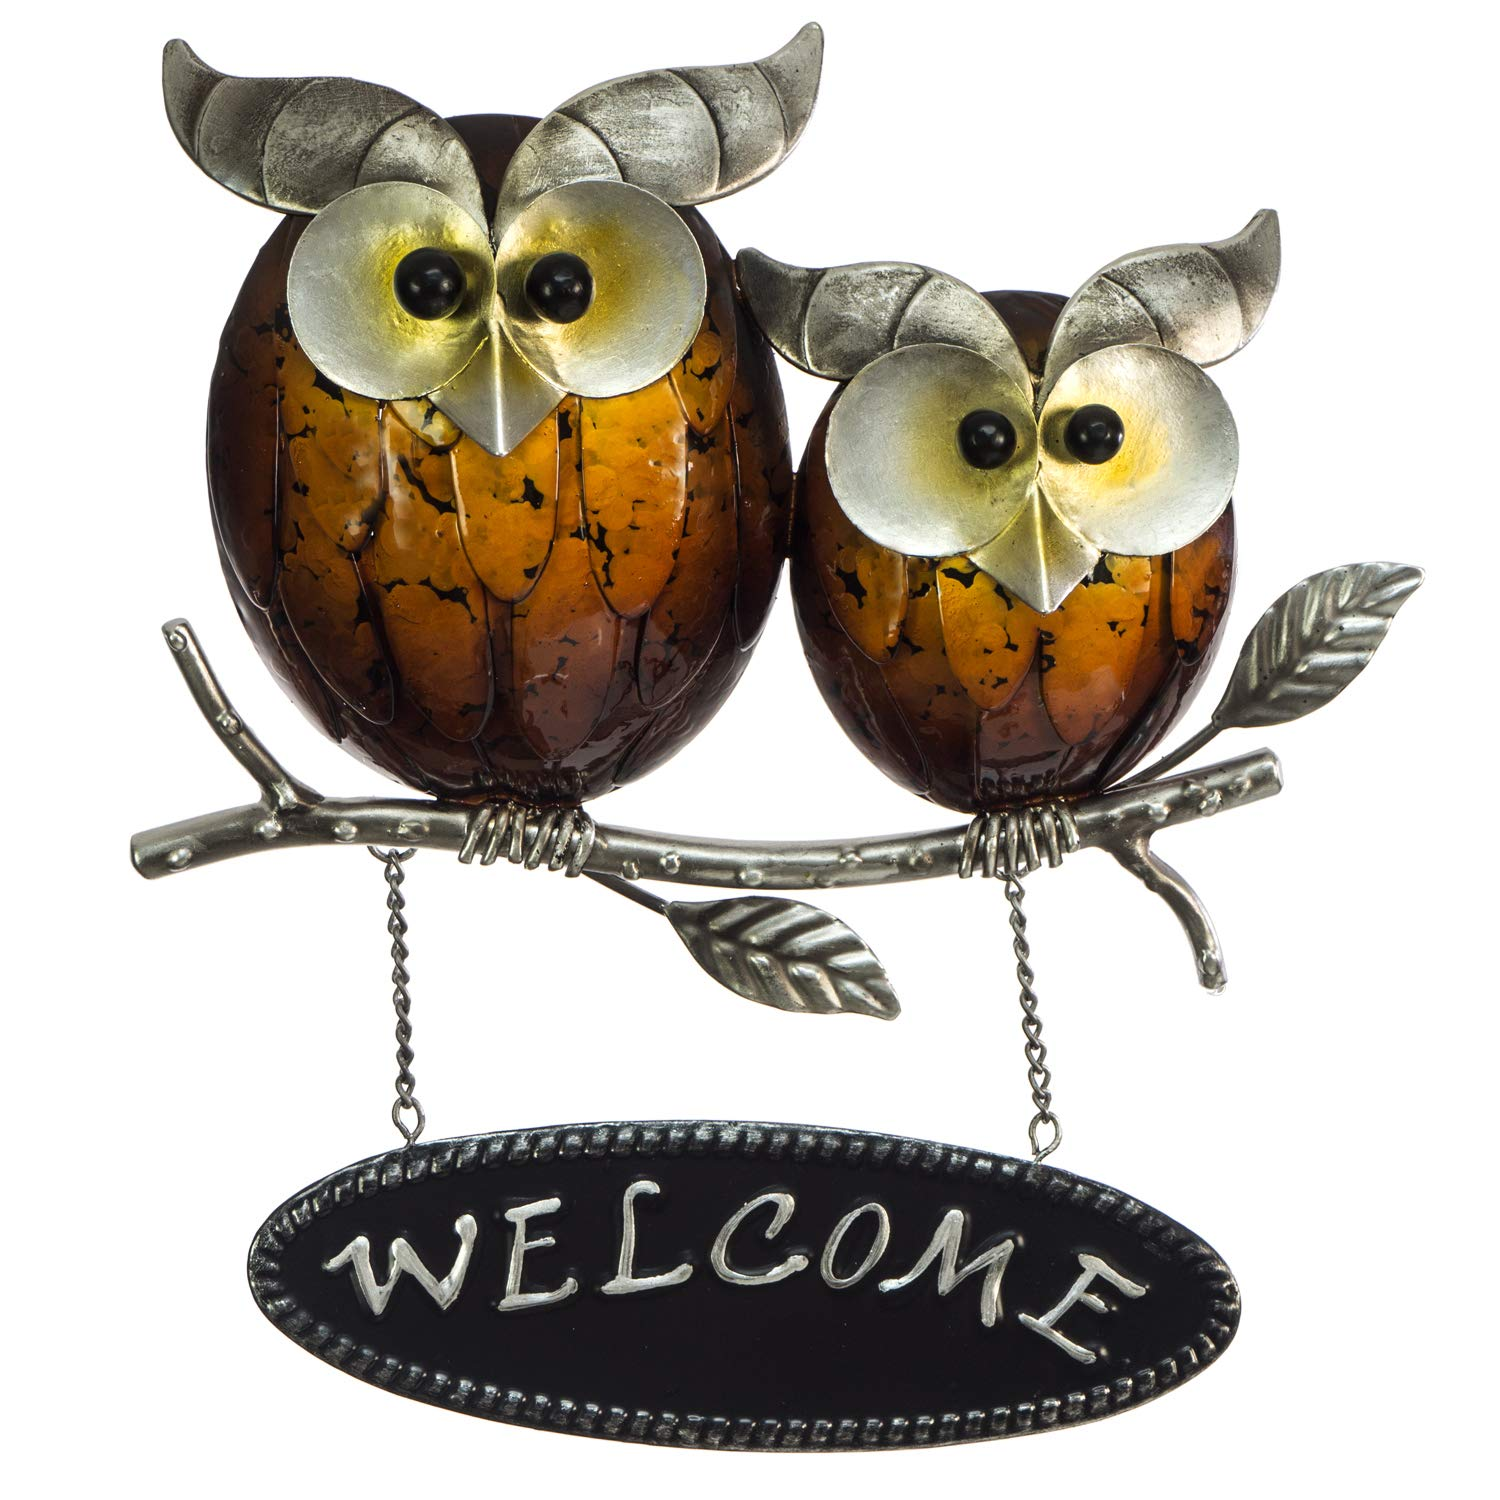 "Owl Welcome Wall Décor Sign – 3D Metal Design - Hand-Painted - 11"" x 10"" - Cute Home Decoration - Indoor or Outdoor Use - Wall Hanging in Contemporary Farmhouse Style"